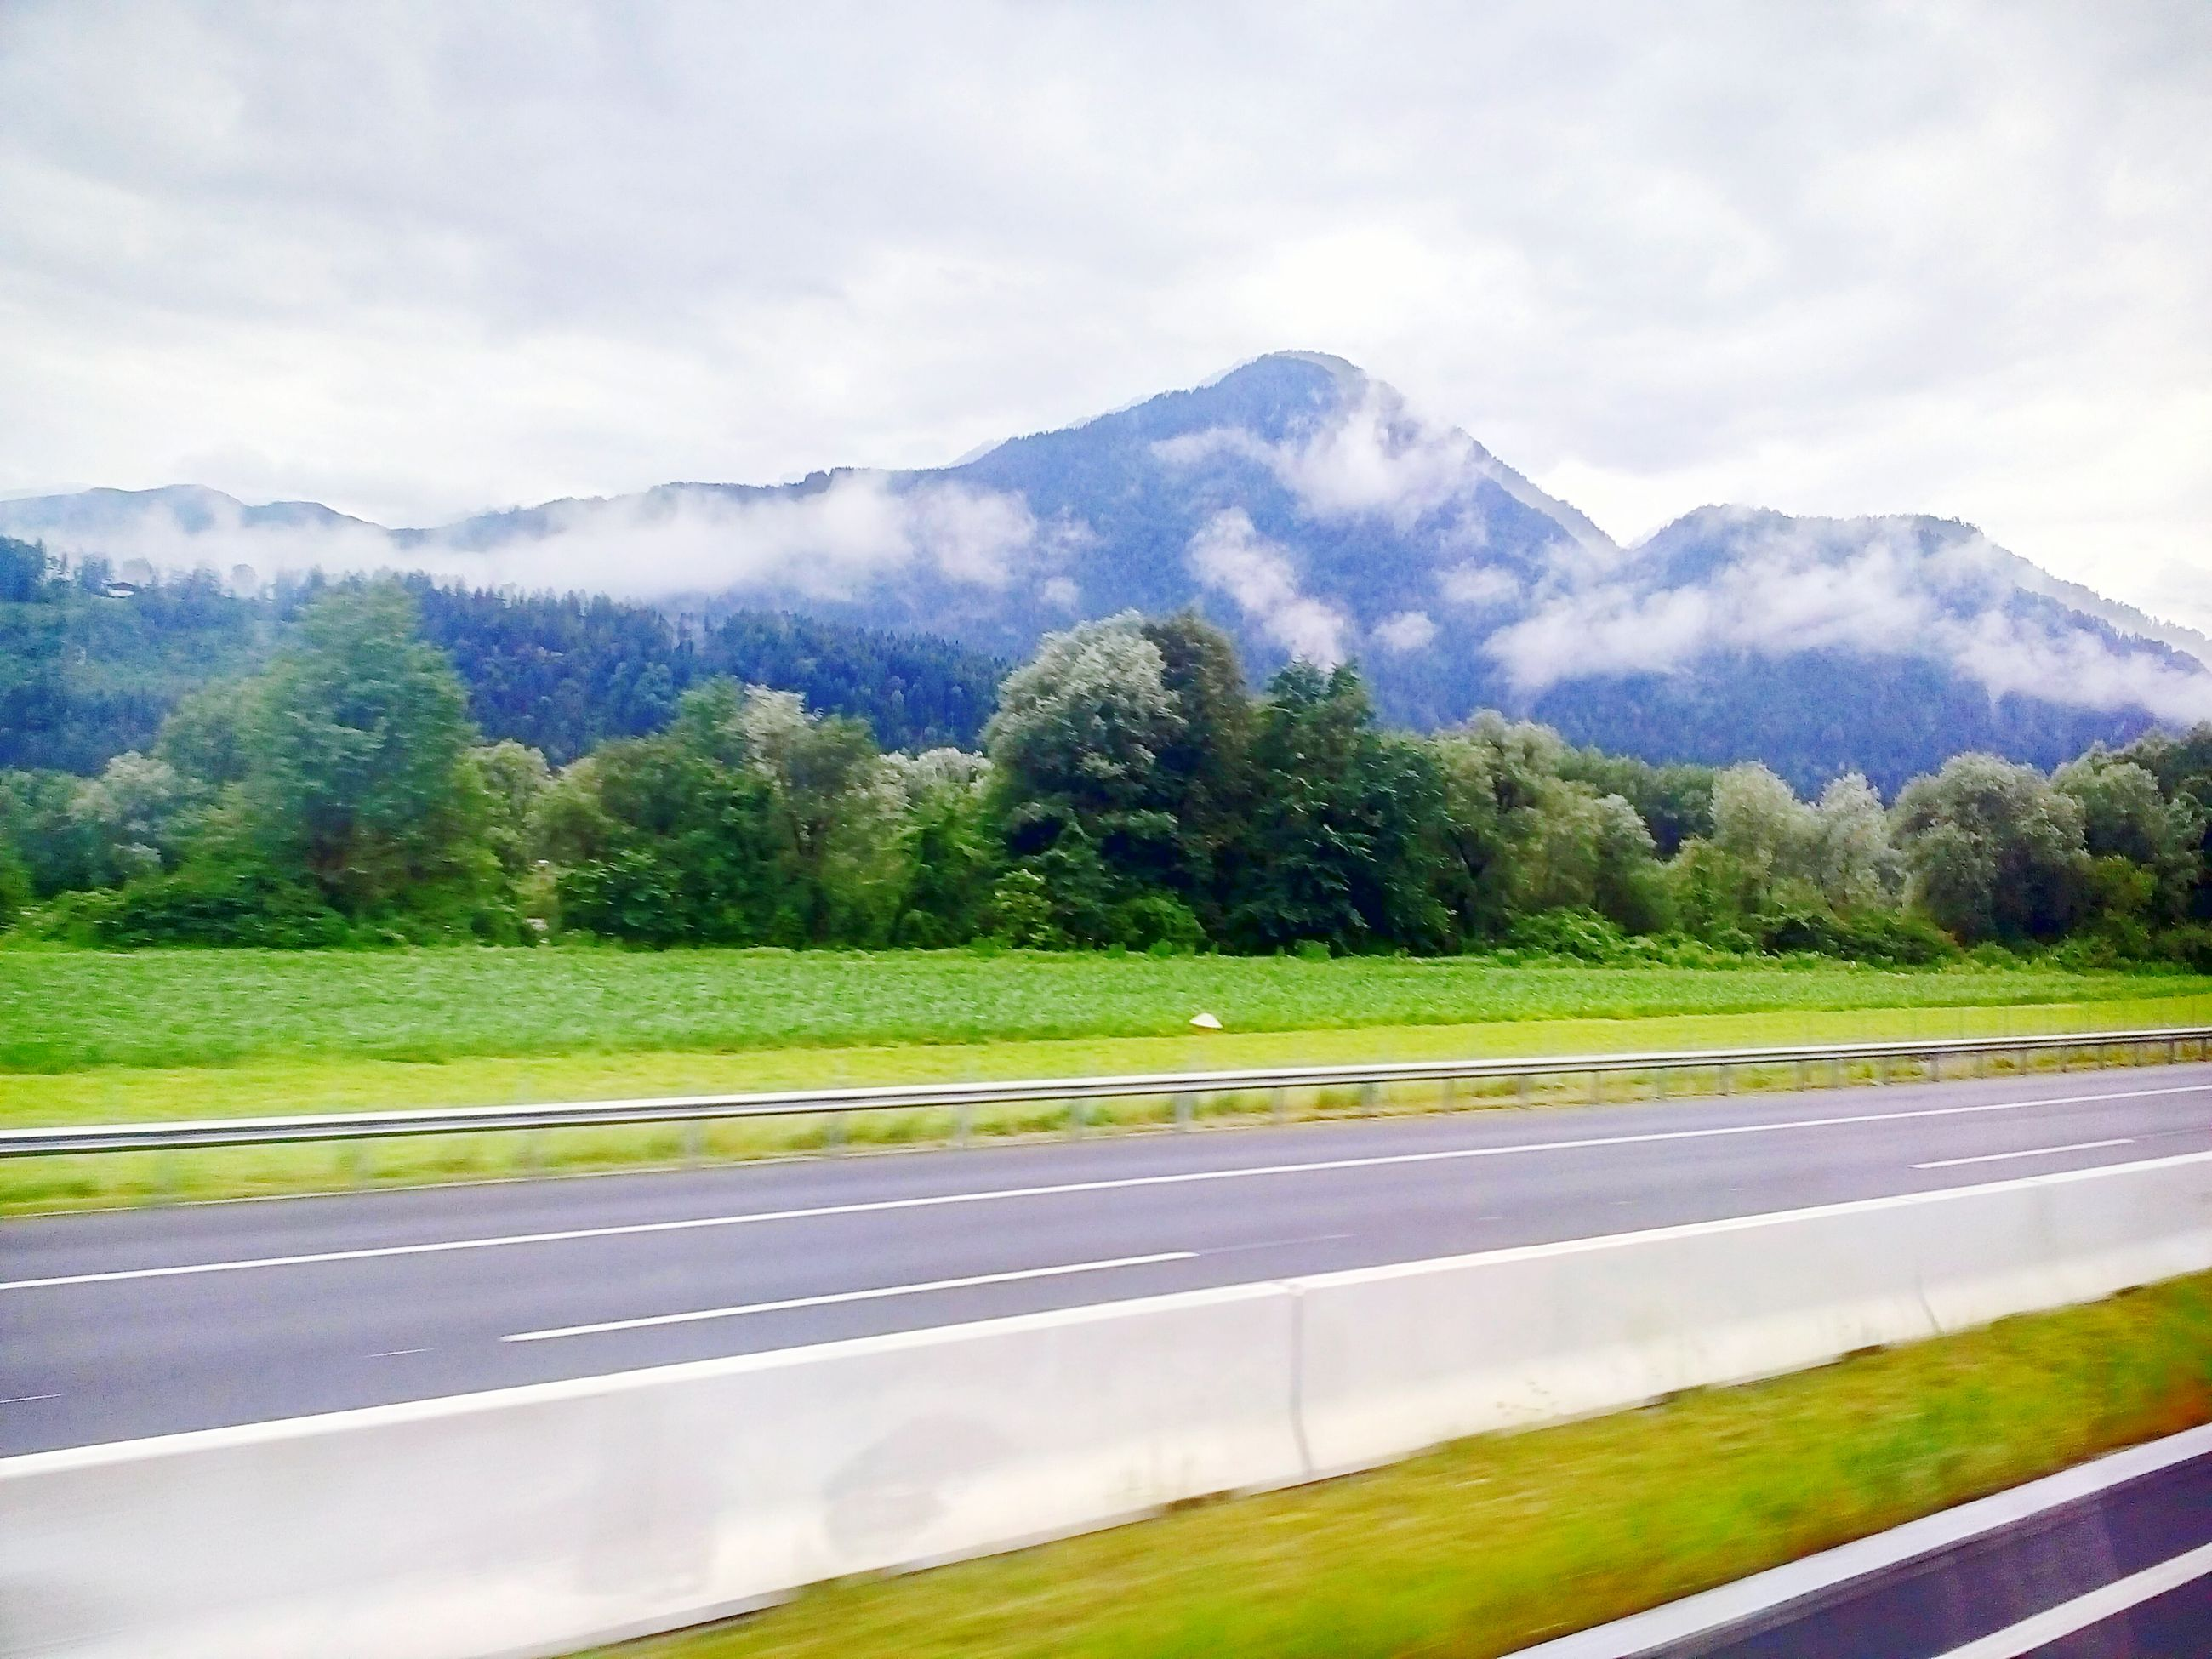 mountain, road, empty, tranquil scene, tree, street, tranquility, transportation, landscape, scenics, road marking, solitude, nature, mountain range, long, beauty in nature, country road, green color, pathway, non-urban scene, majestic, outdoors, cloud, white line, countryside, day, in front of, the way forward, remote, sky, narrow, empty road, growth, cloud - sky